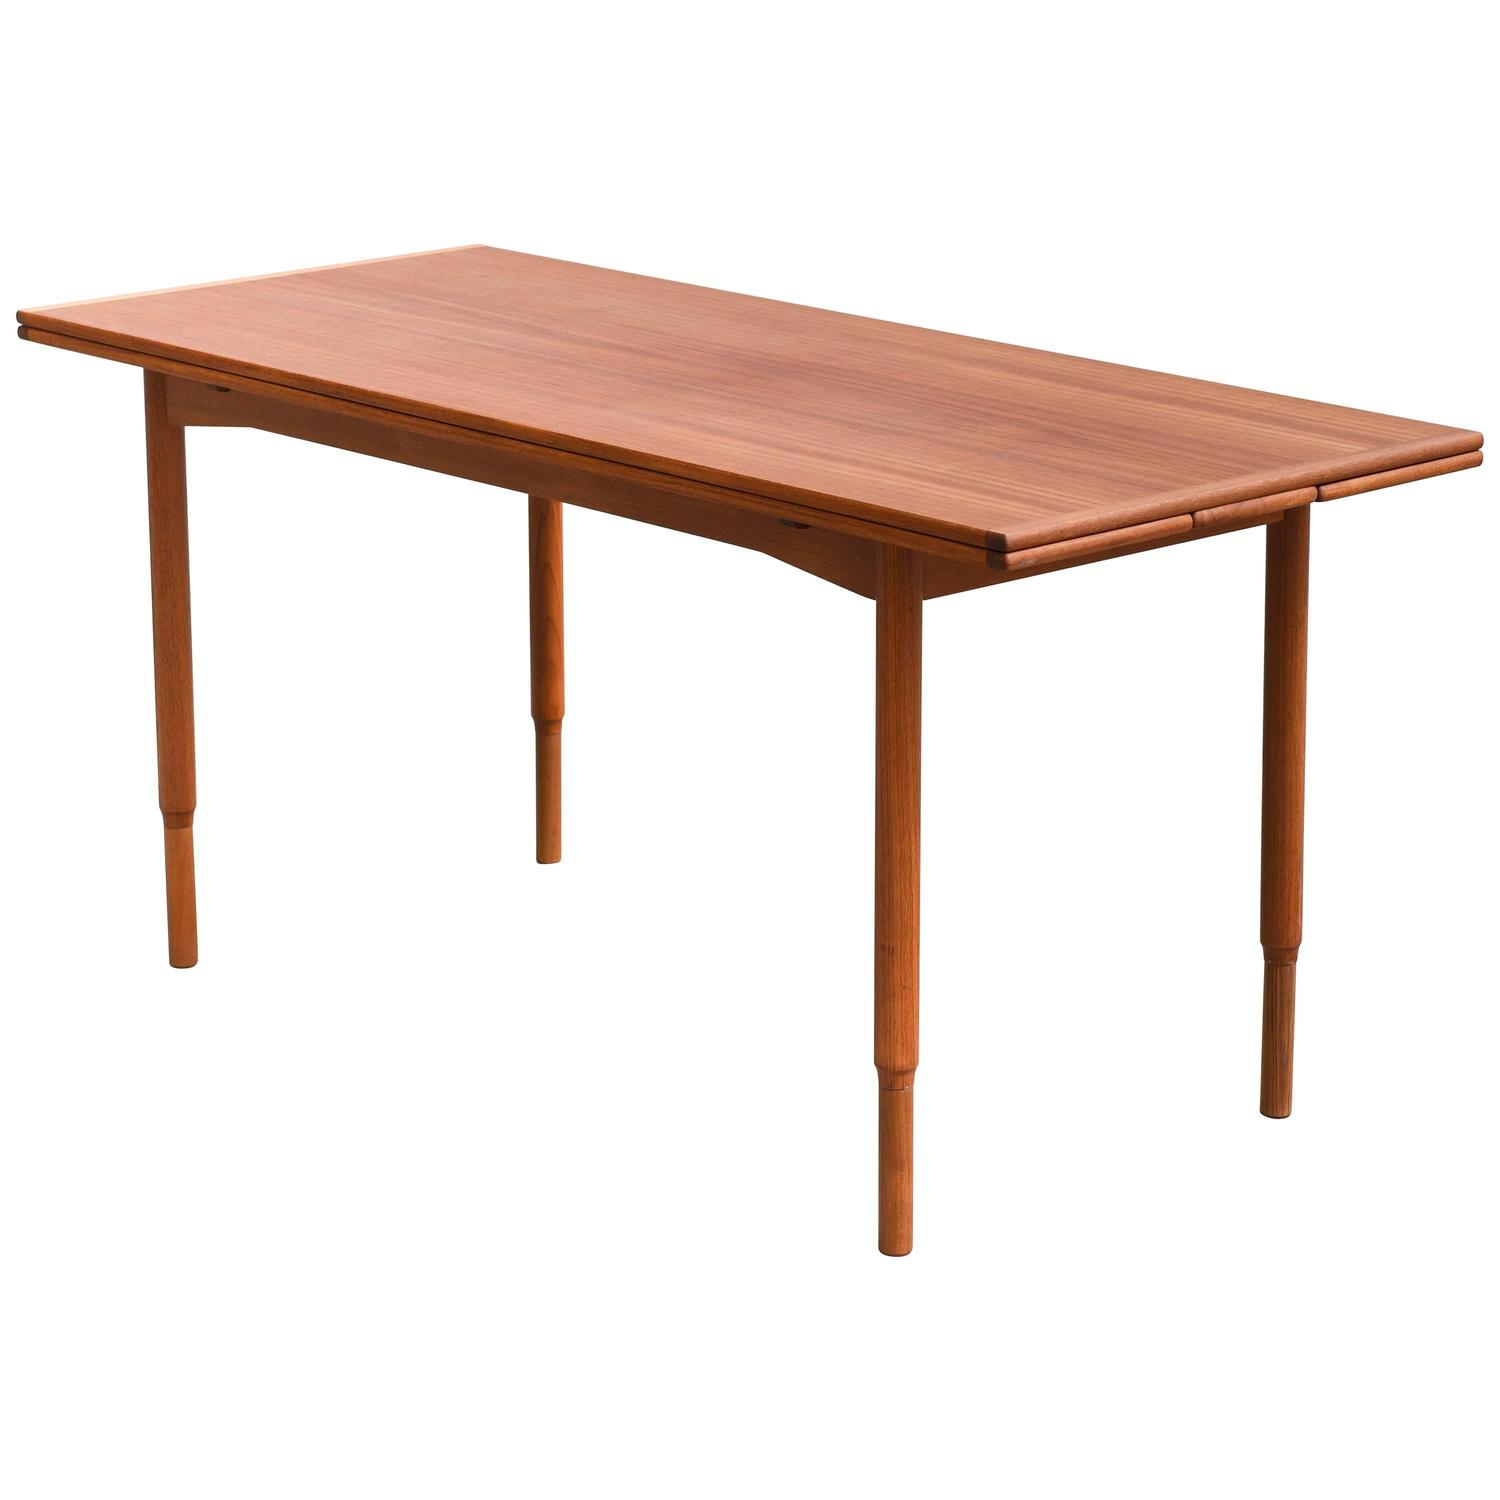 Teak Coffee or Dining Table by P S Heggen For Sale at 1stdibs